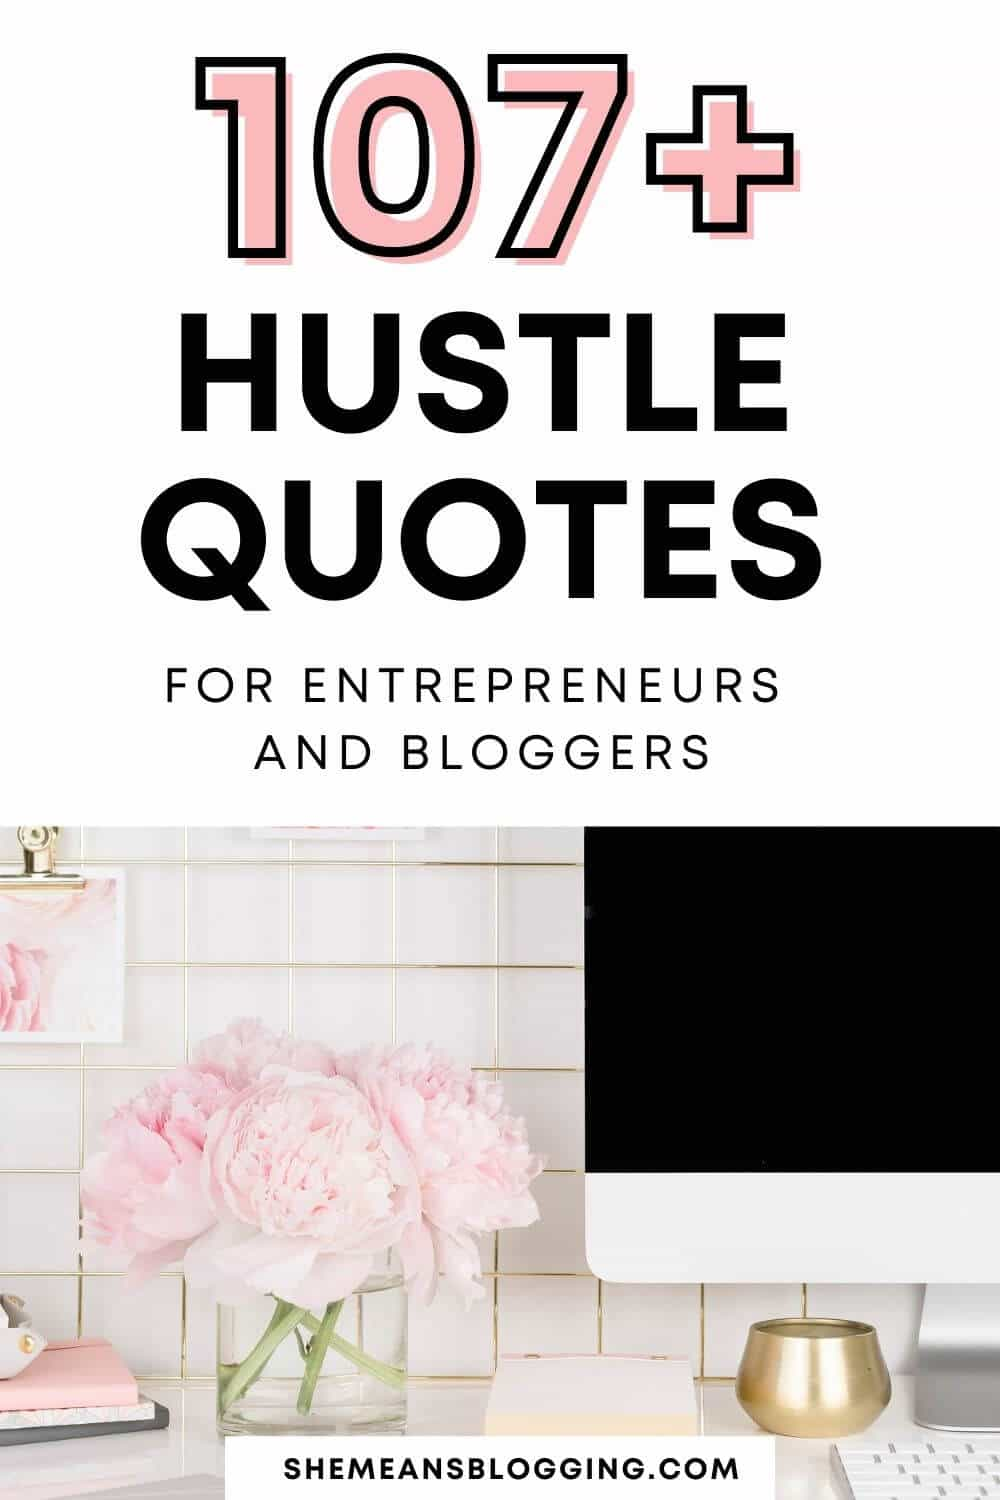 The best hustle quotes for entrepreneurs and bloggers. Want to feel motivated and get inspired to get work done? Check out these hustle quotes right now! Motivational quotes for entrepreneurs.